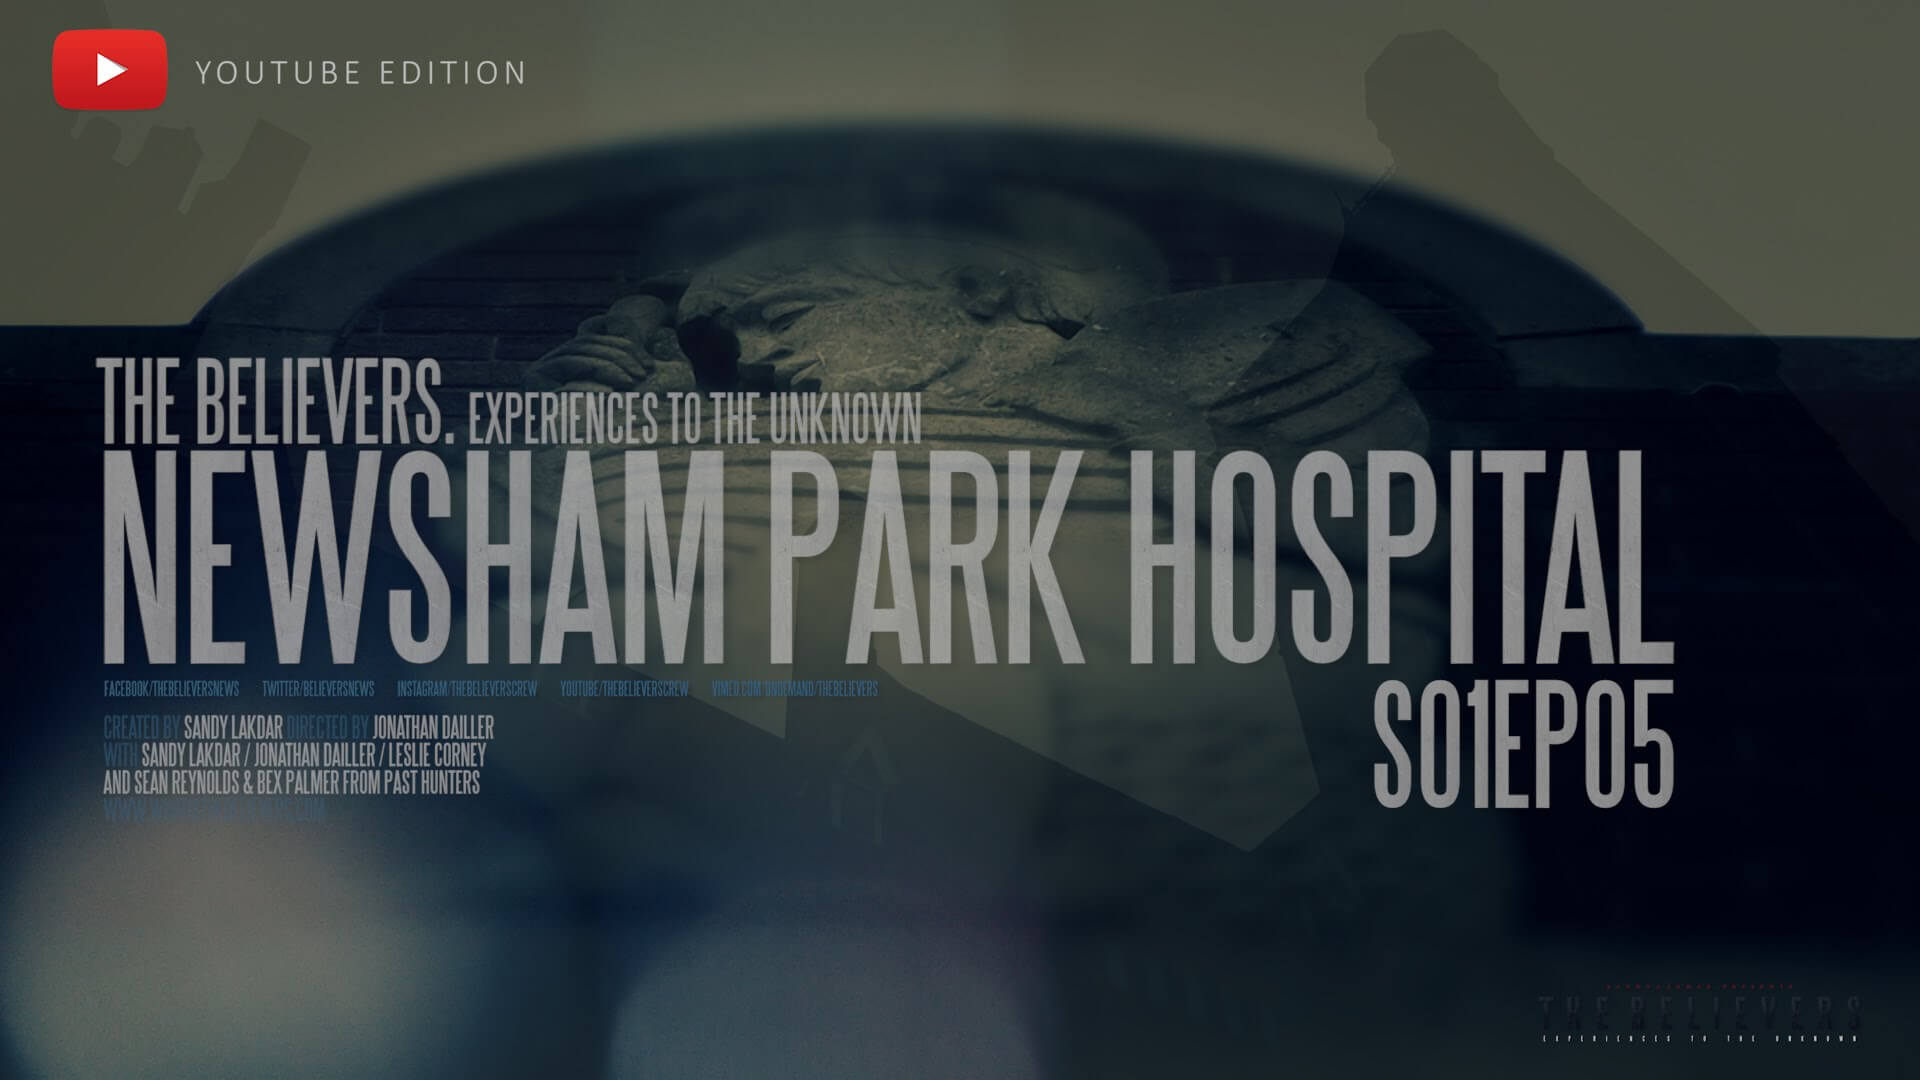 The Newsham Park Hospital - The Believers